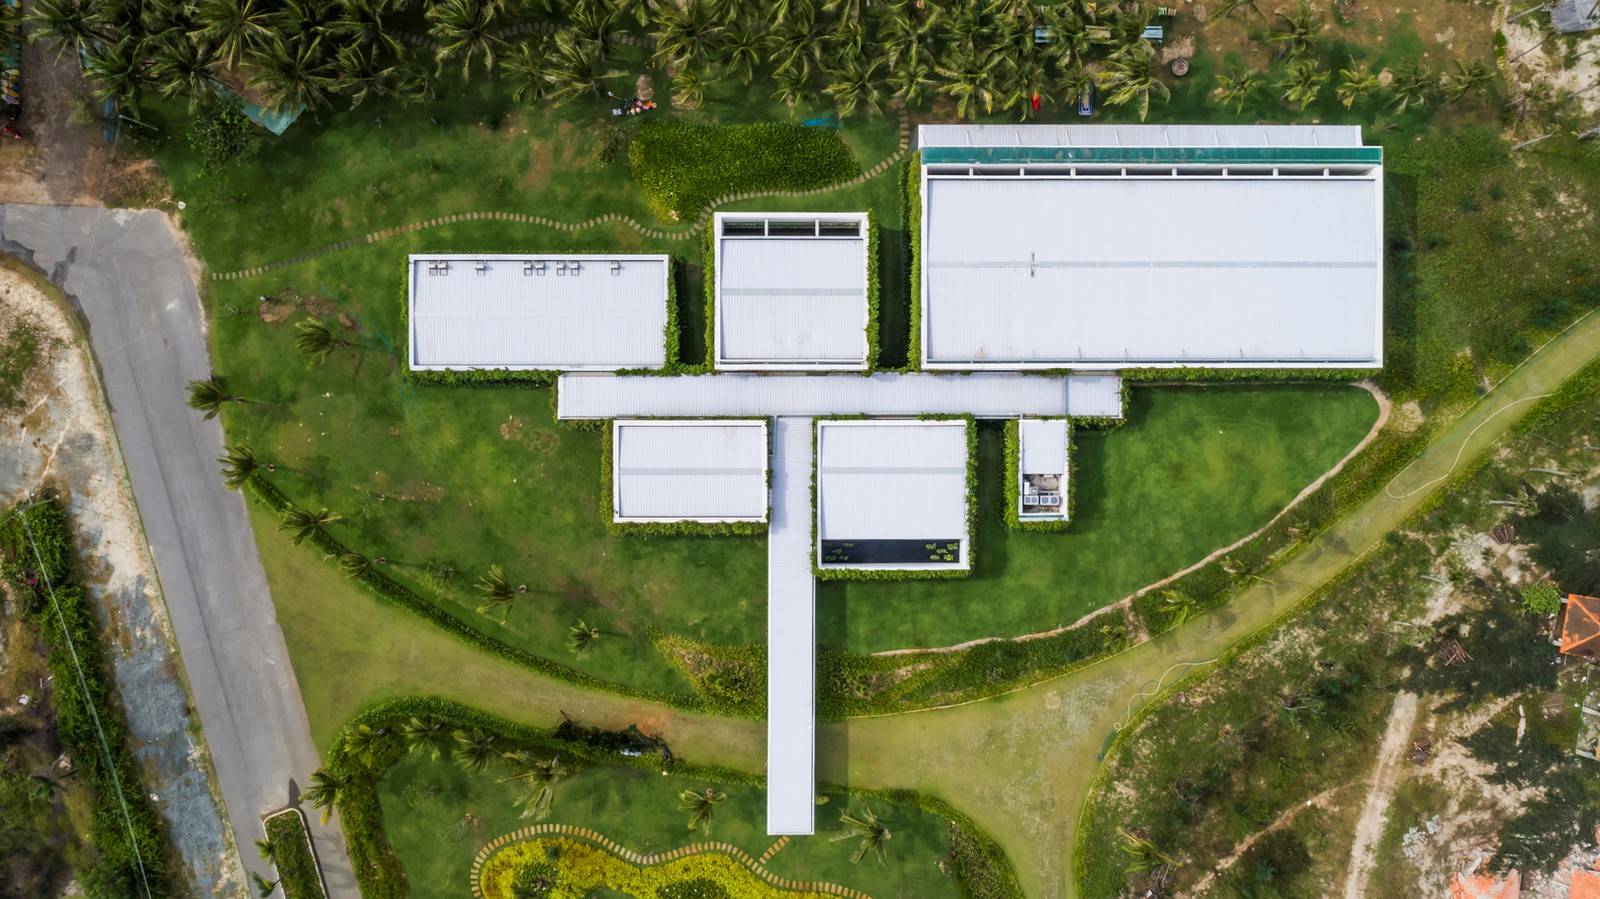 Six Landscape Boxes Form This Gallery And Showroom In Vietnam designed by MIA Design Studio - Sheet4